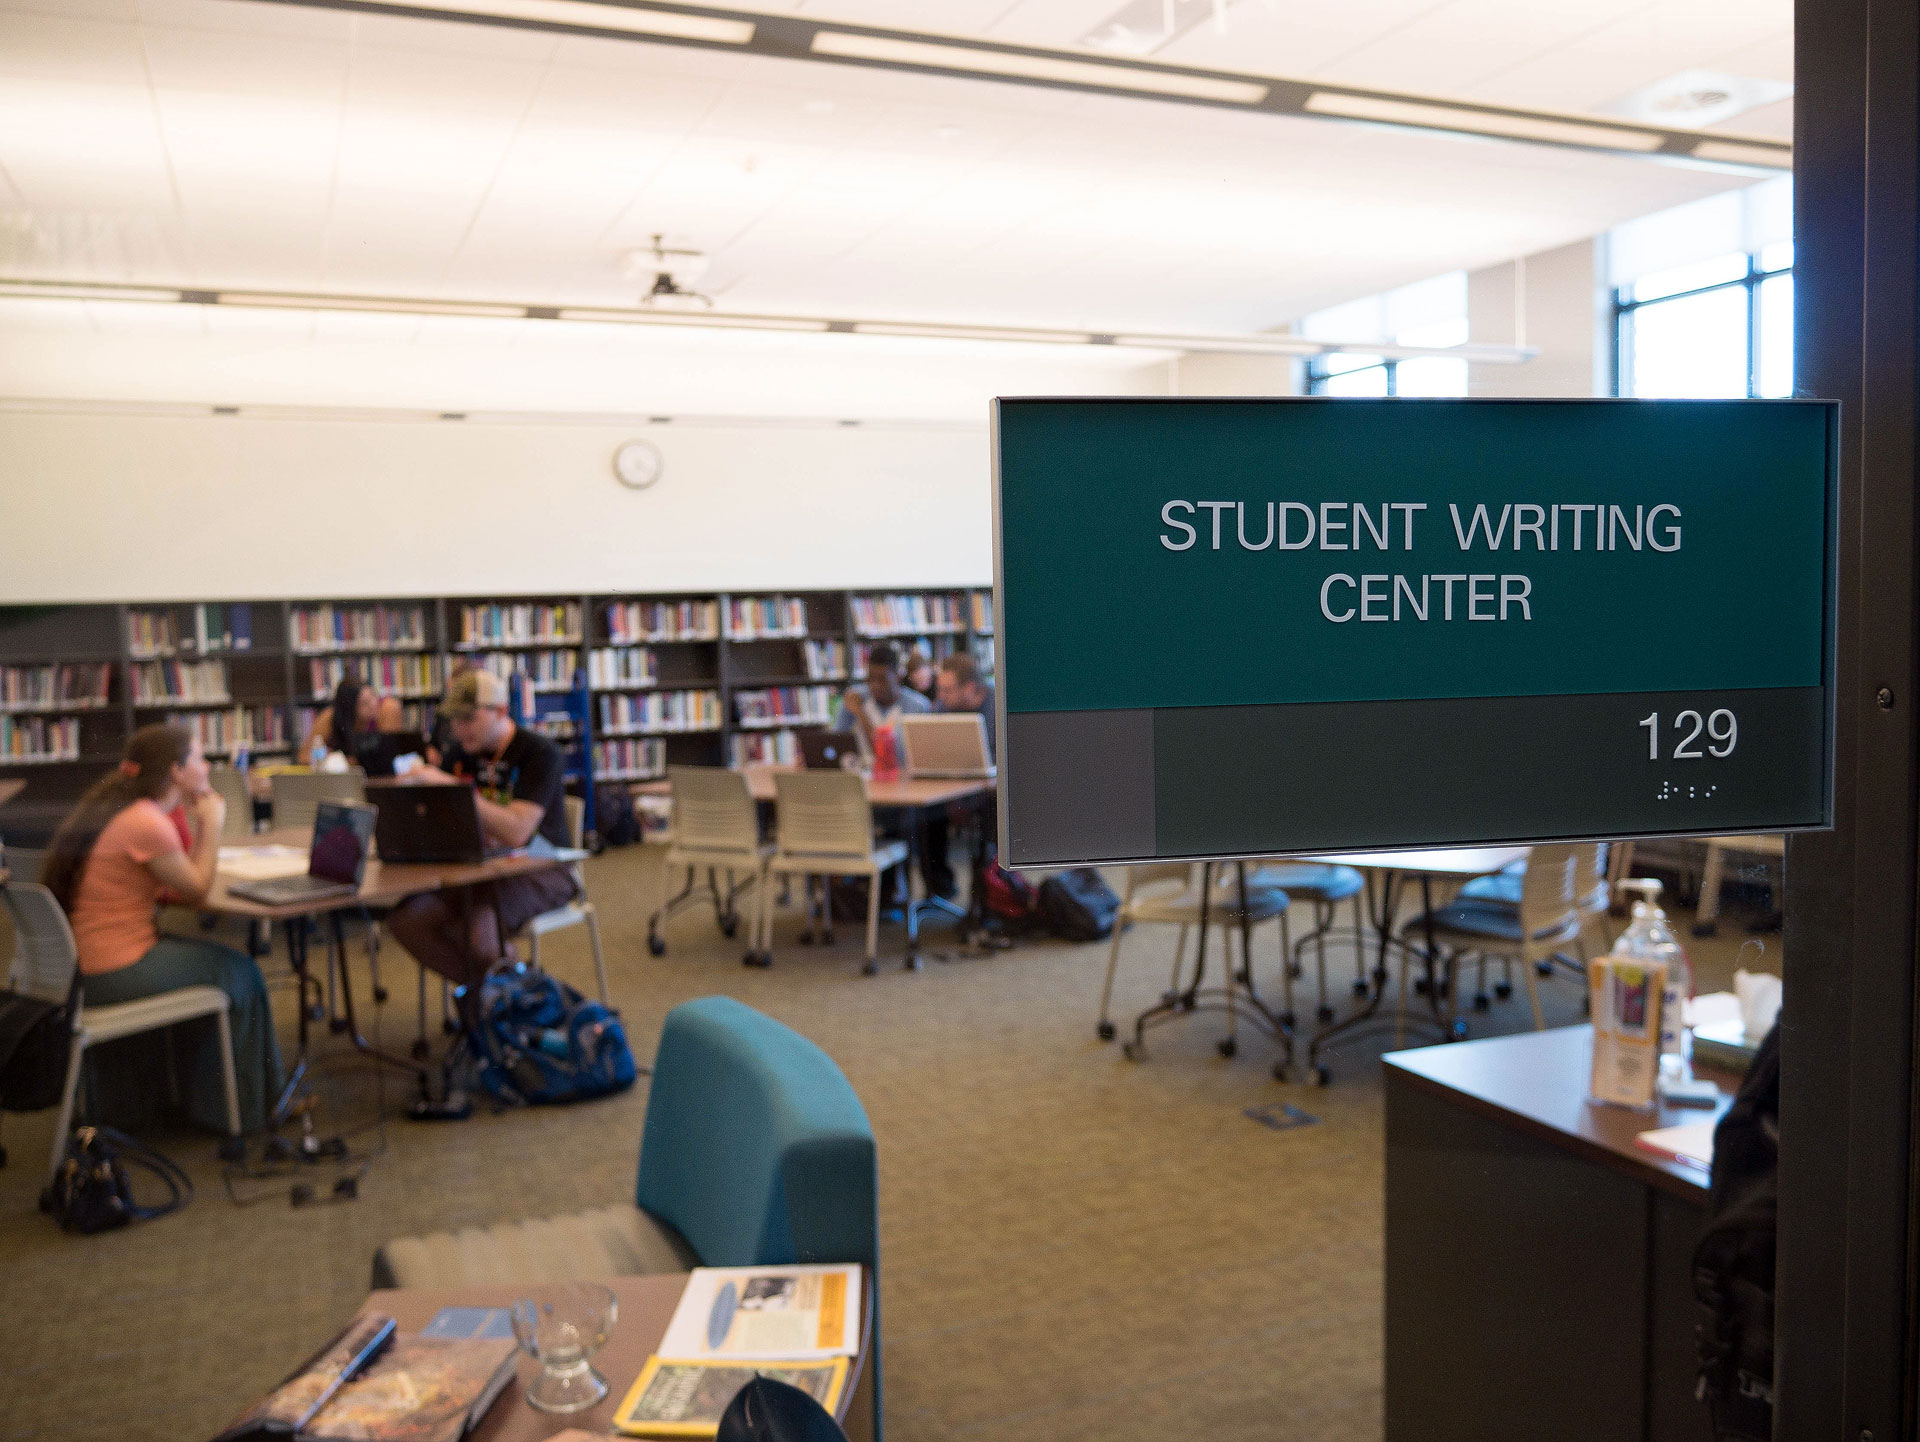 Old Student Writing Center sign